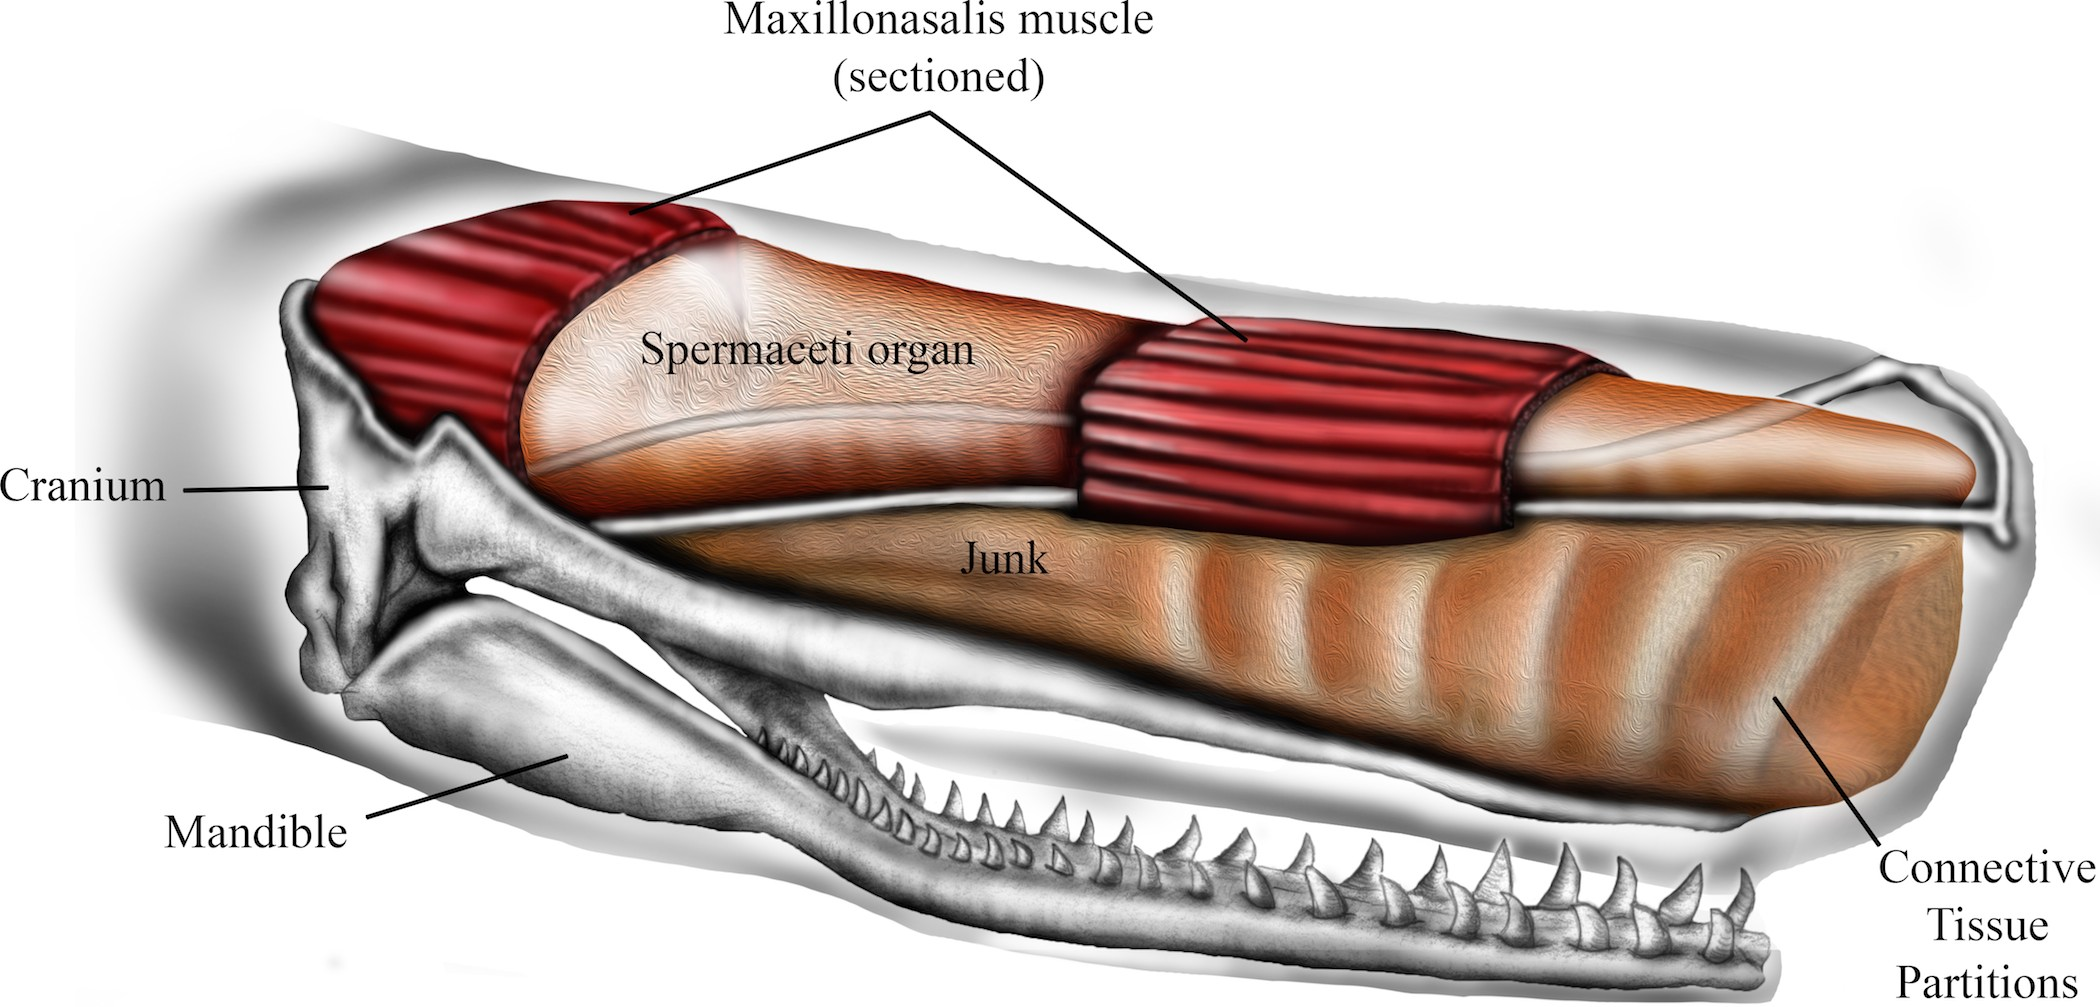 Architecture of the sperm whale forehead facilitates ramming combat